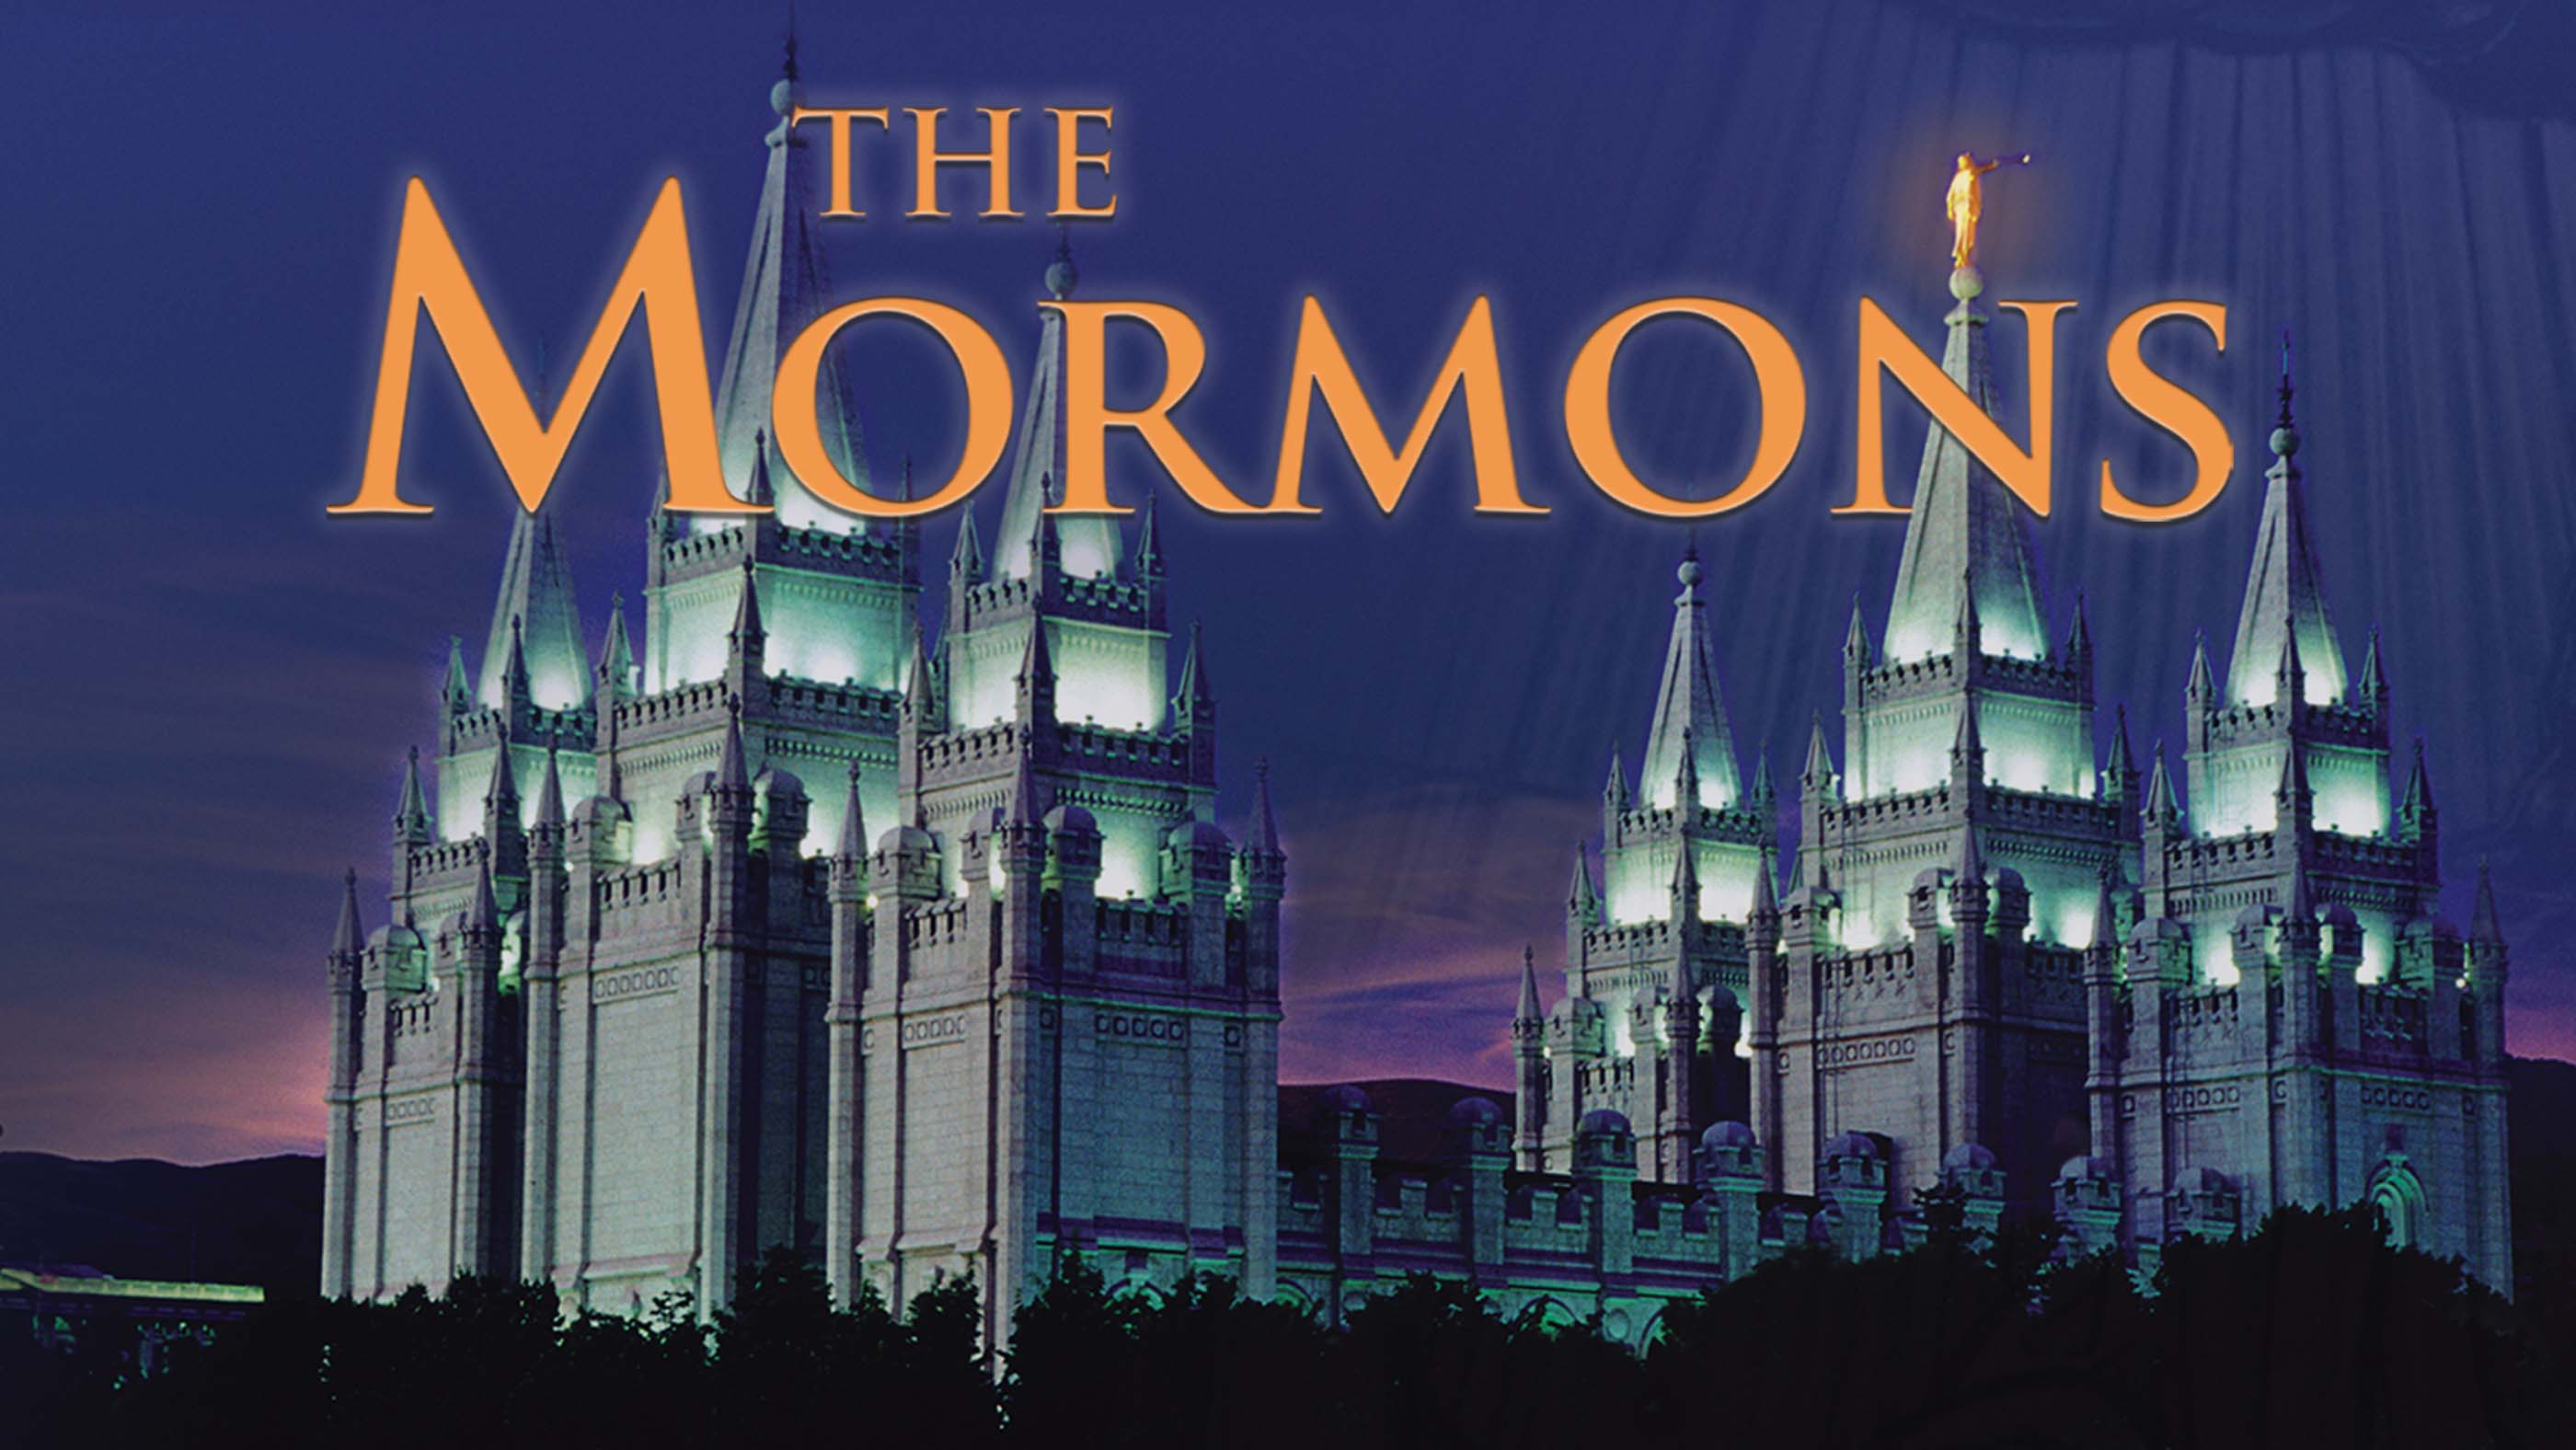 Watch The Mormons | American Experience | Official Site | PBS